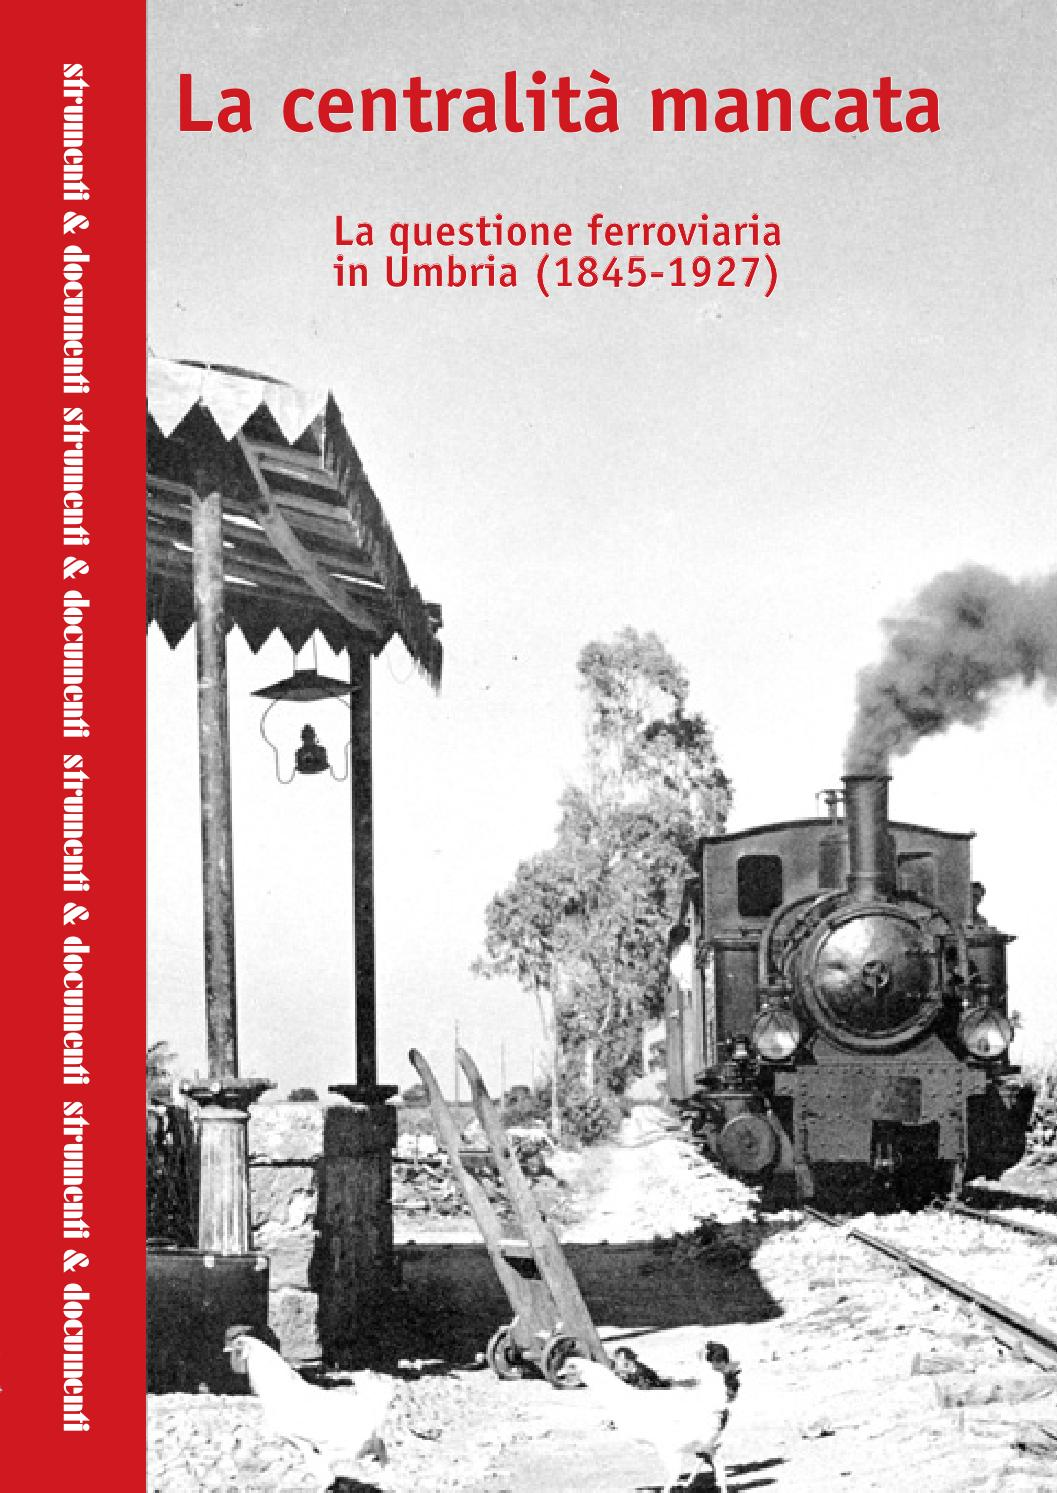 Stefano de cenzo la questione ferroviaria in umbria 1845 1927 crace perugia  2004 by Gianni Bovini - issuu